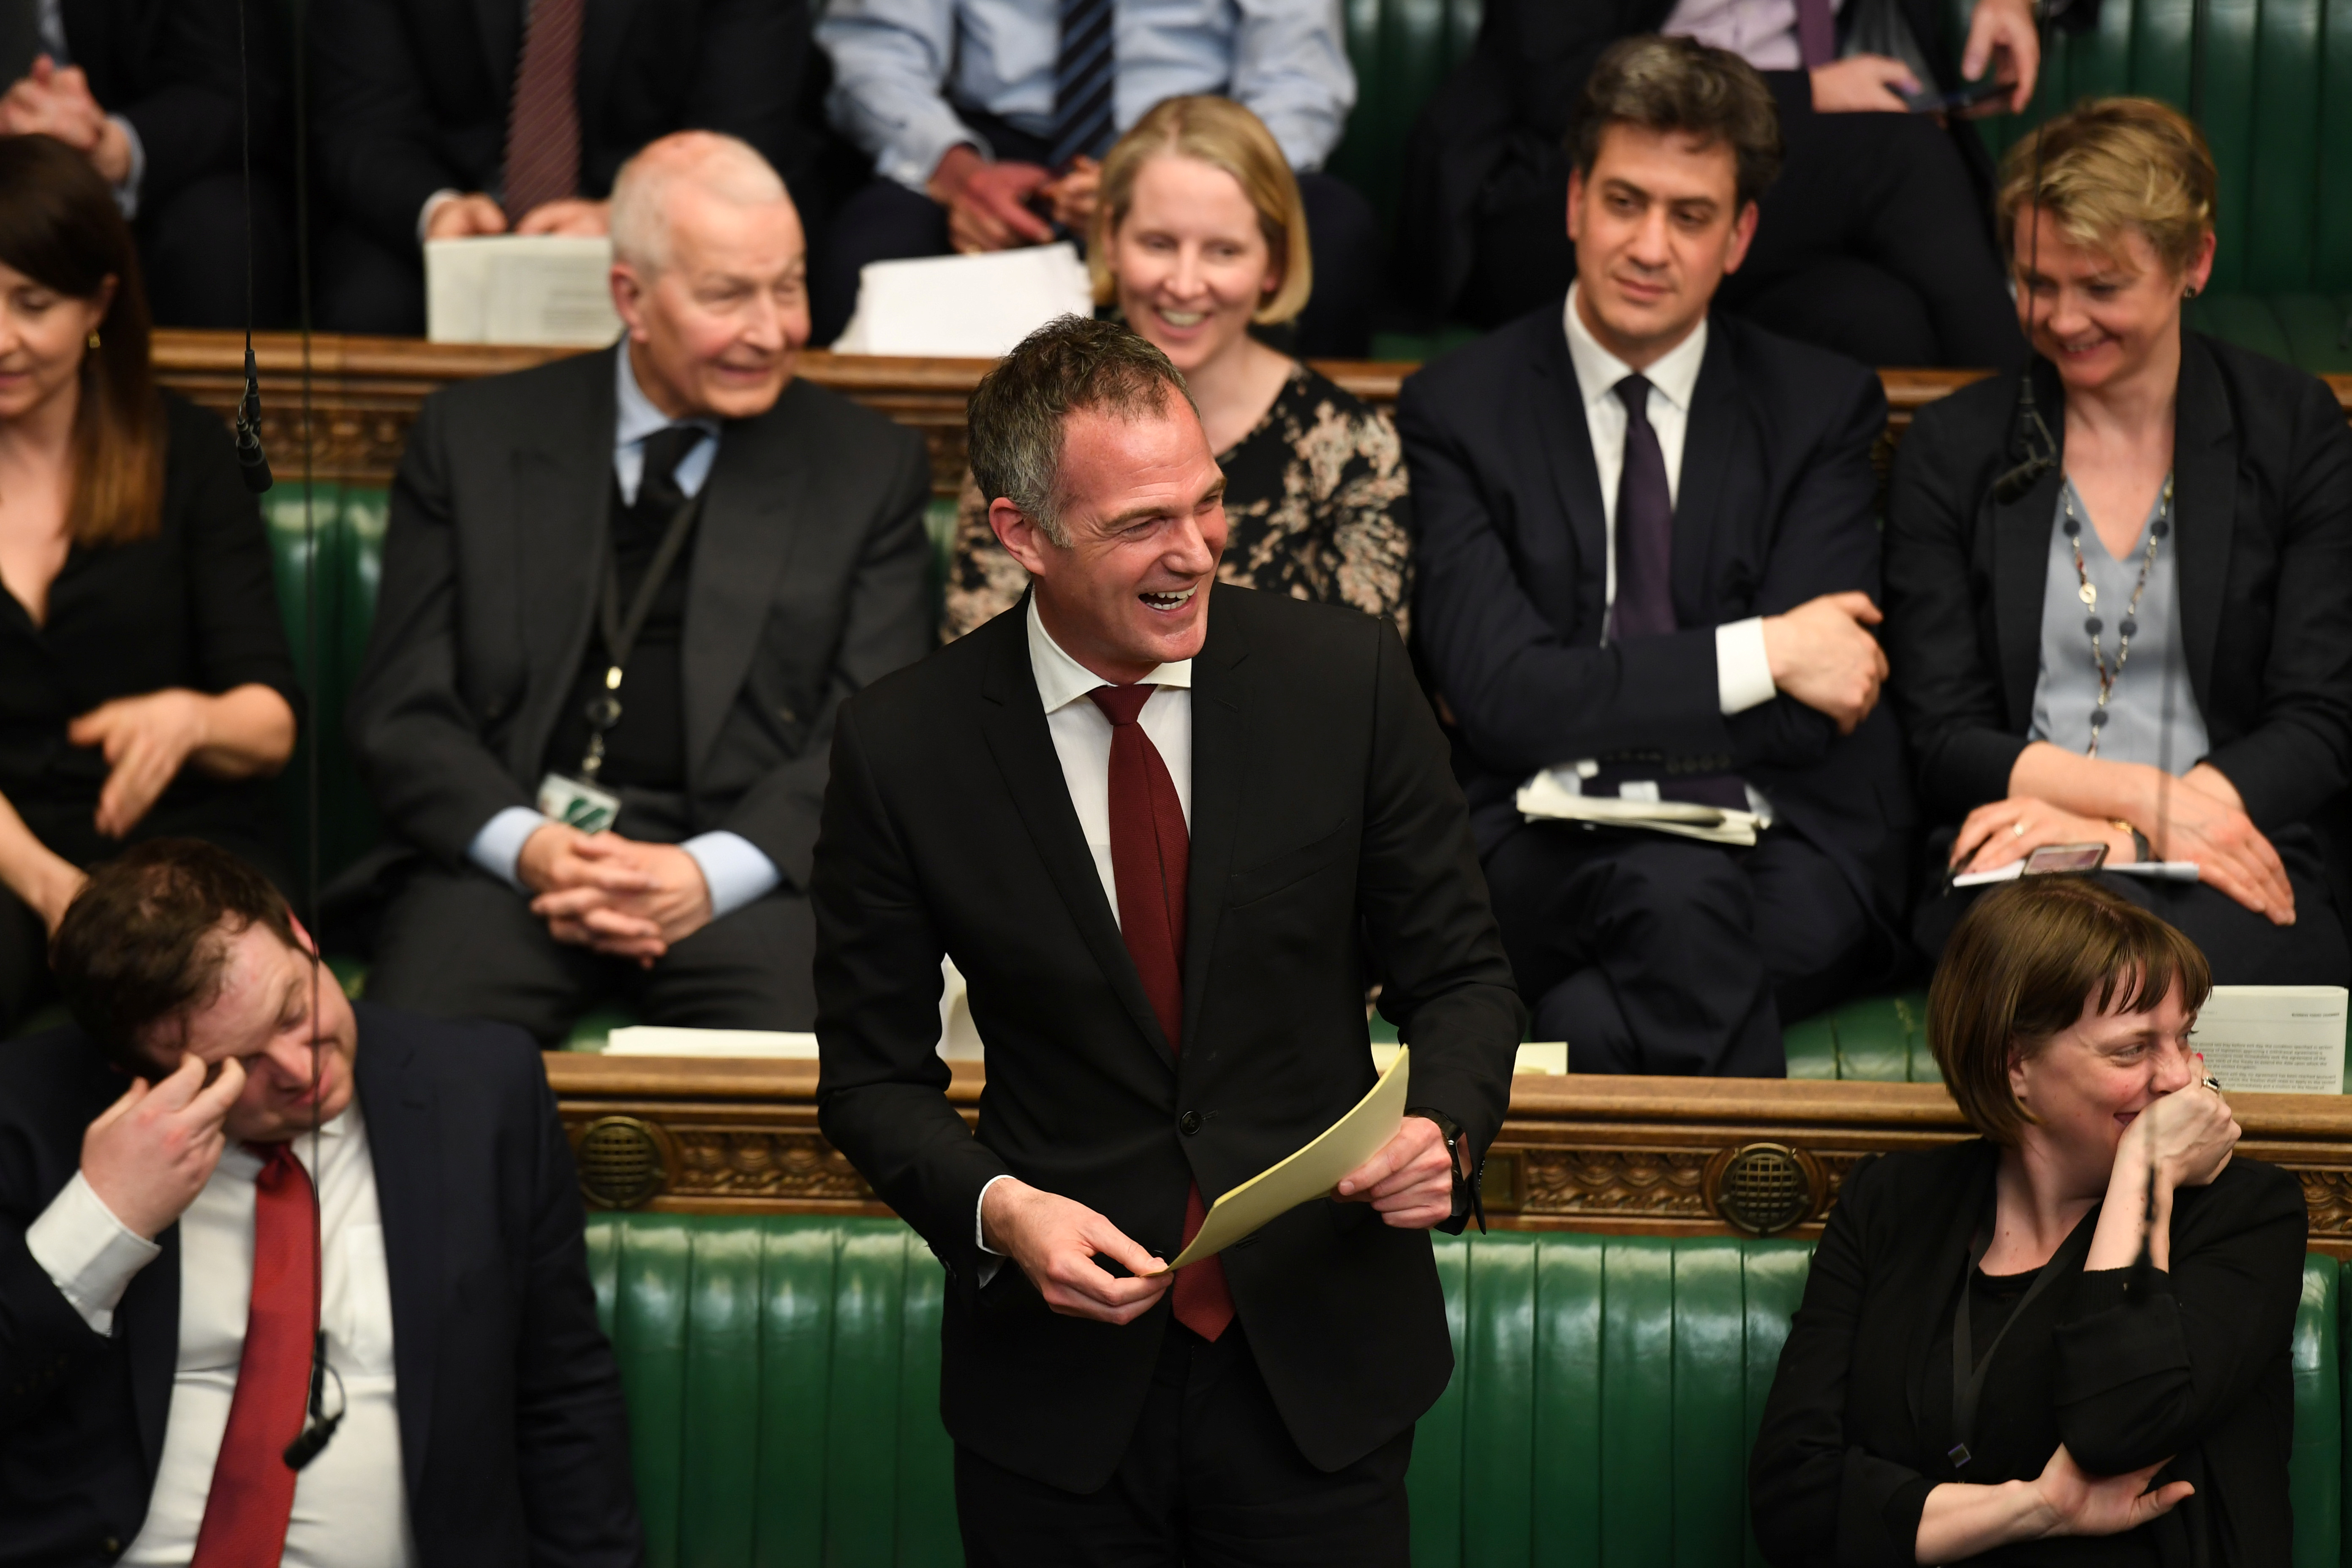 British Labour MP Peter Kyle laughs as he speaks at the House of Commons in London, Britain April 1, 2019. ©UK Parliament/Jessica Taylor/Handout via REUTERS